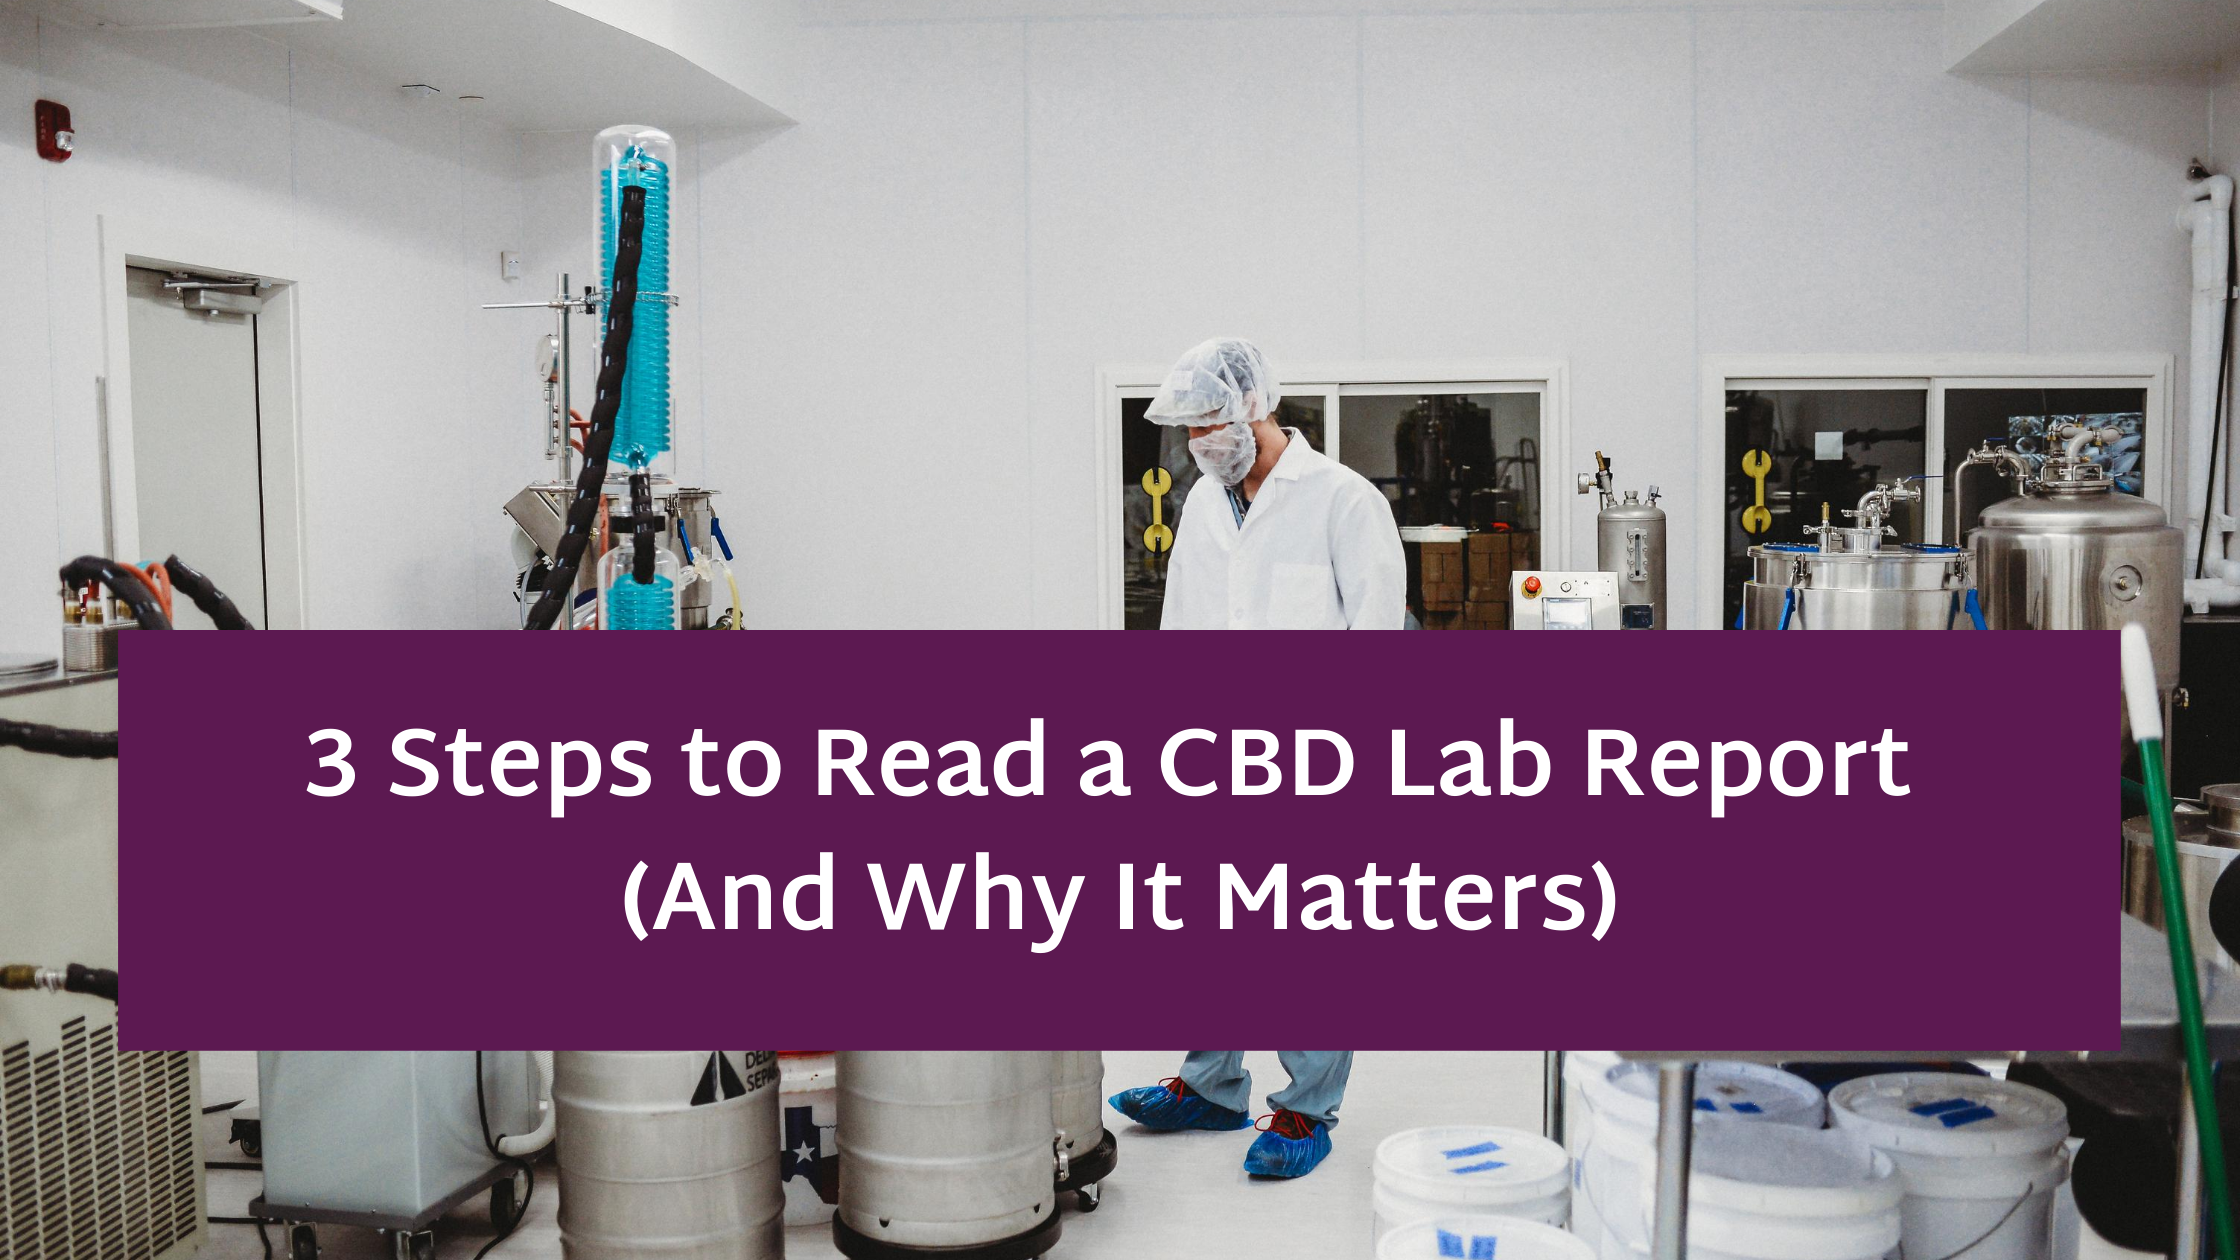 3 Steps to Read a CBD Lab Report (And Why It Matters)